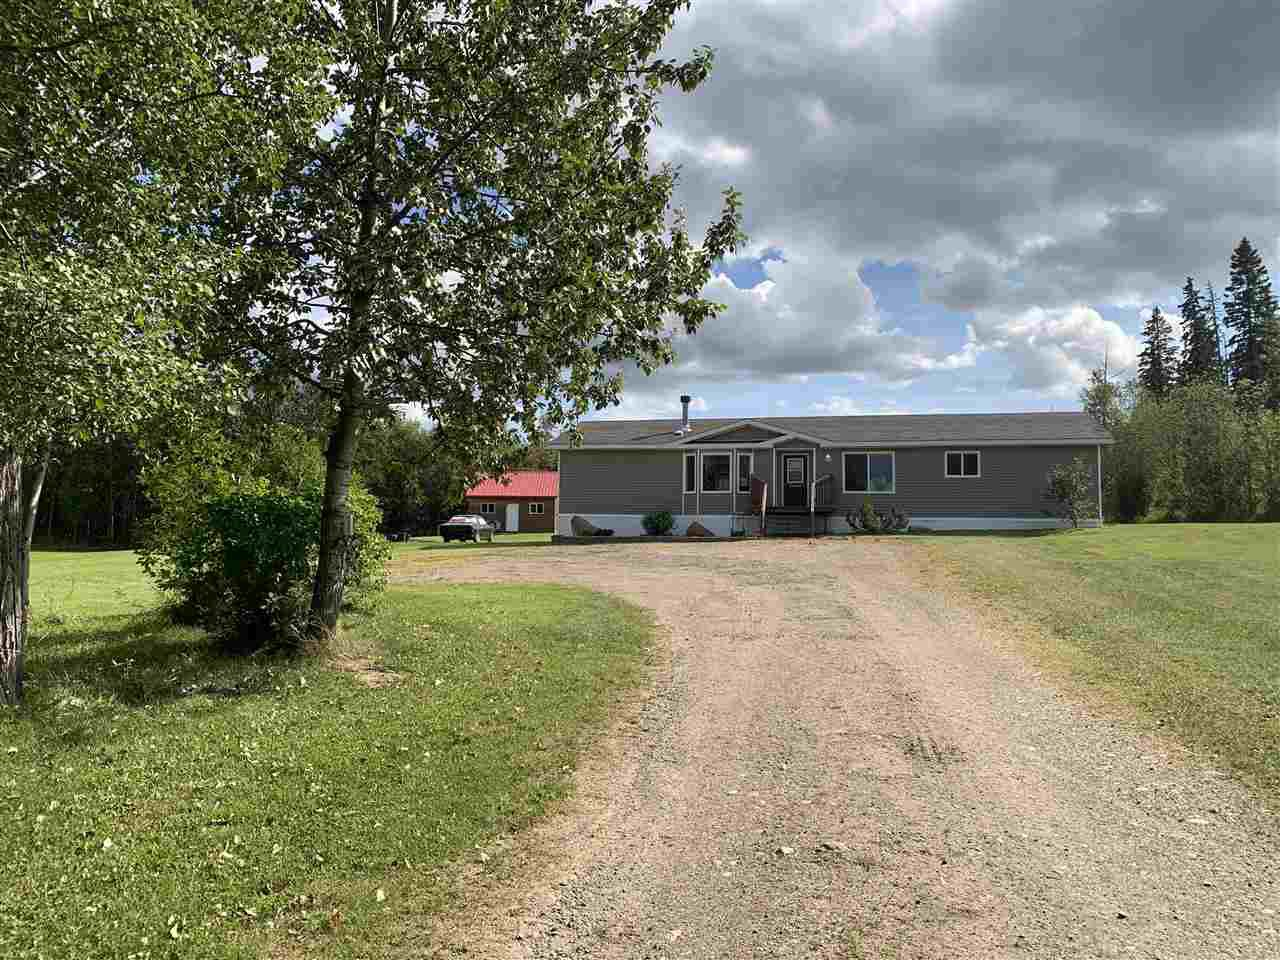 Main Photo: 14603 RED CREEK Road in Fort St. John: Fort St. John - Rural W 100th Manufactured Home for sale (Fort St. John (Zone 60))  : MLS®# R2485688